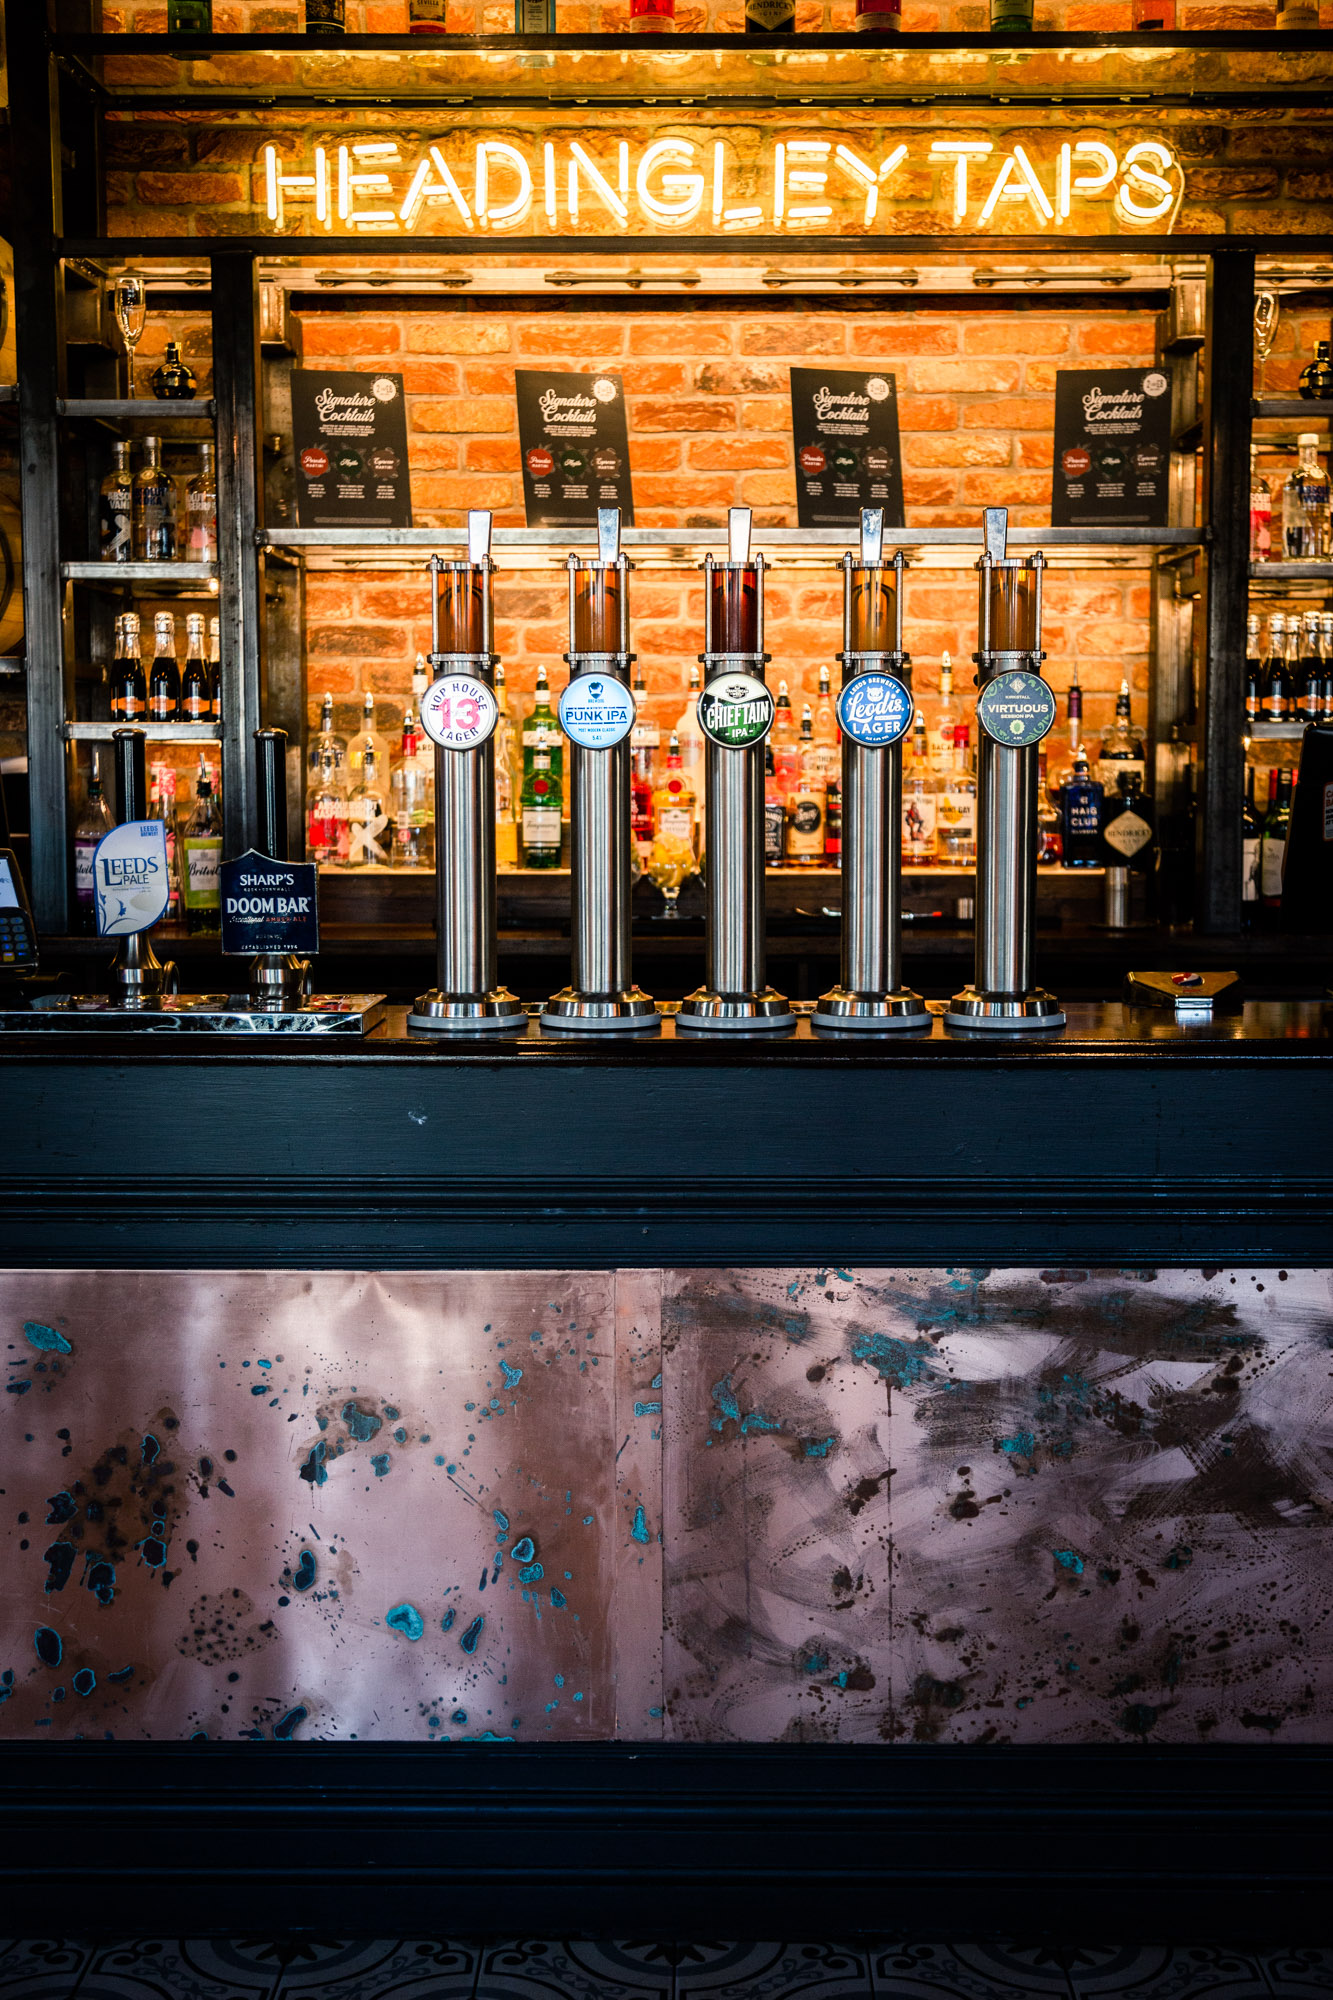 14.03.19 Headingley Taps (72 of 81).jpg